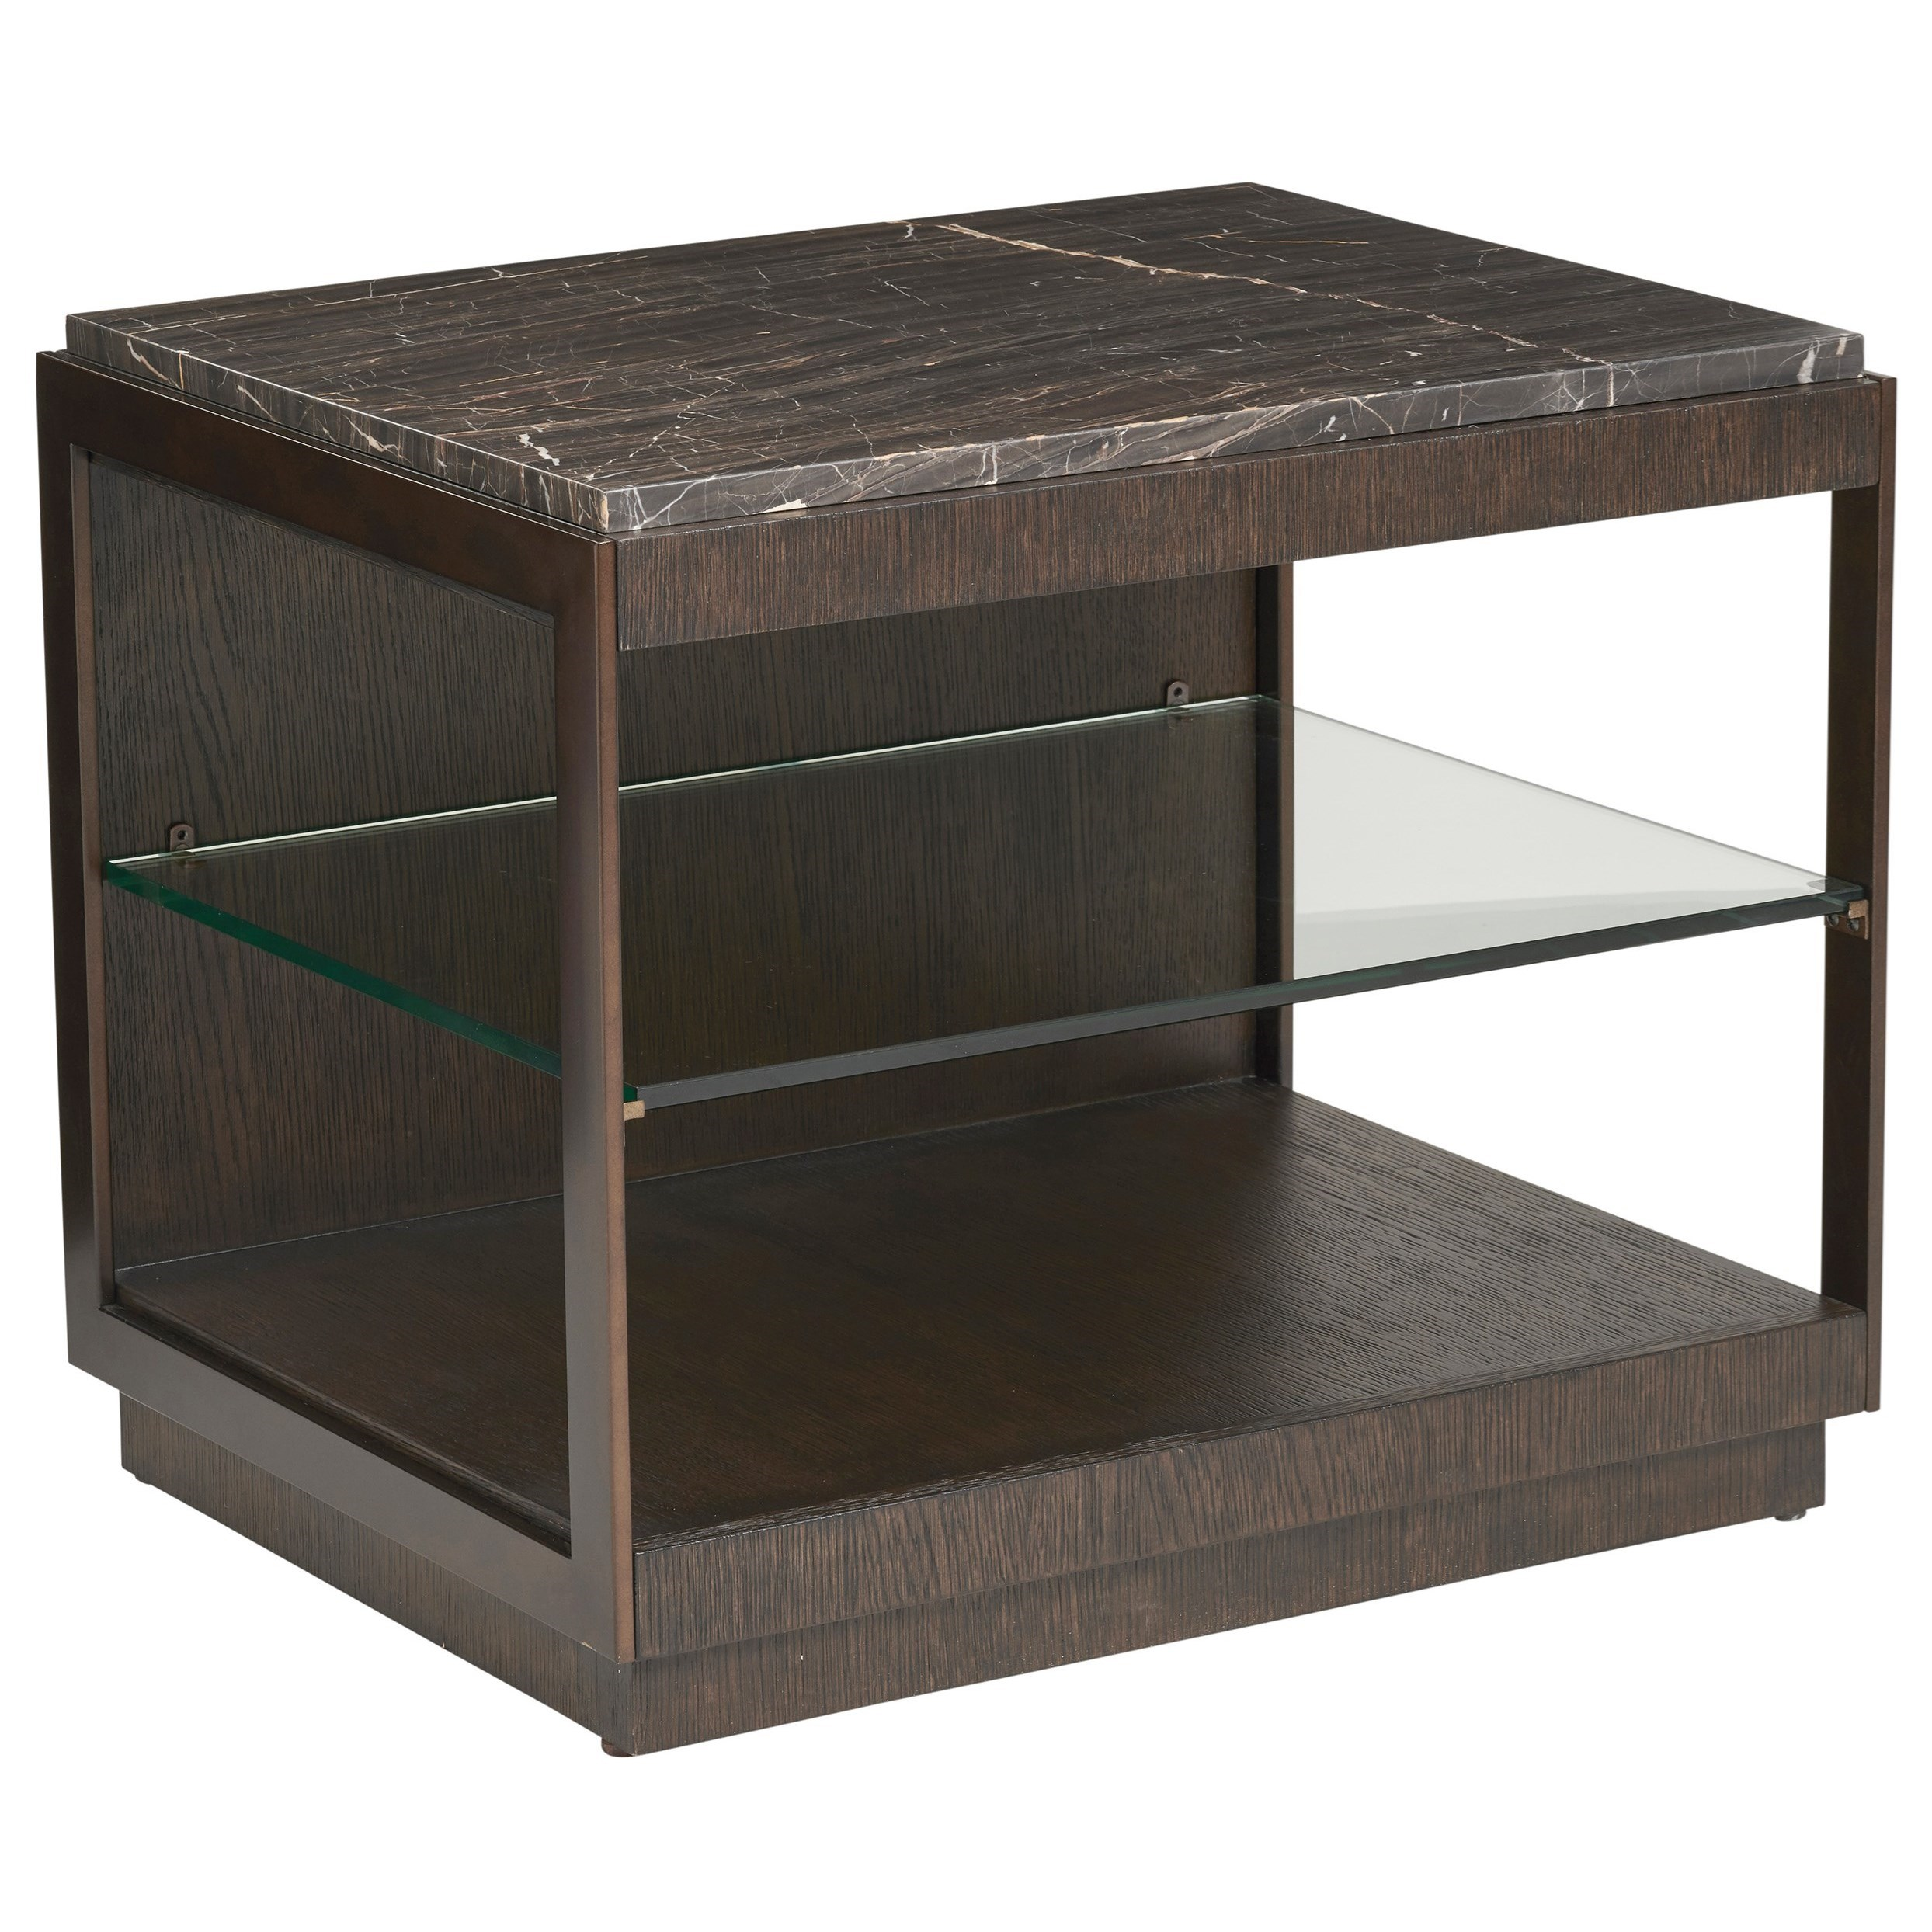 Park City Summit Rectangular End Table by Barclay Butera at Baer's Furniture